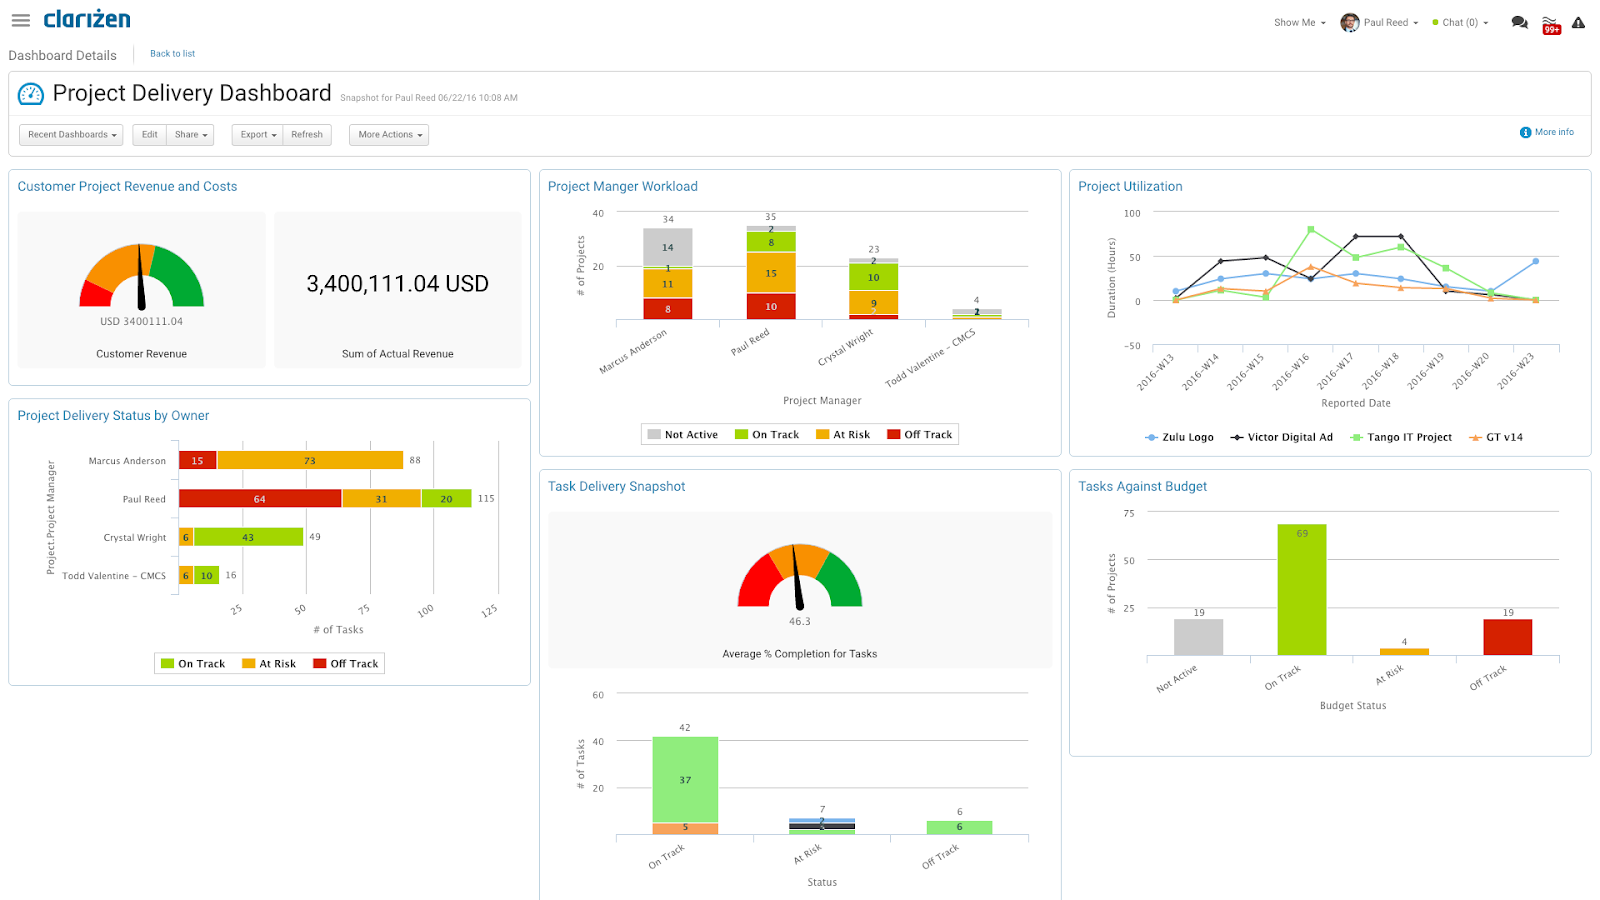 Project delivery reporting dashboard in Clarizen